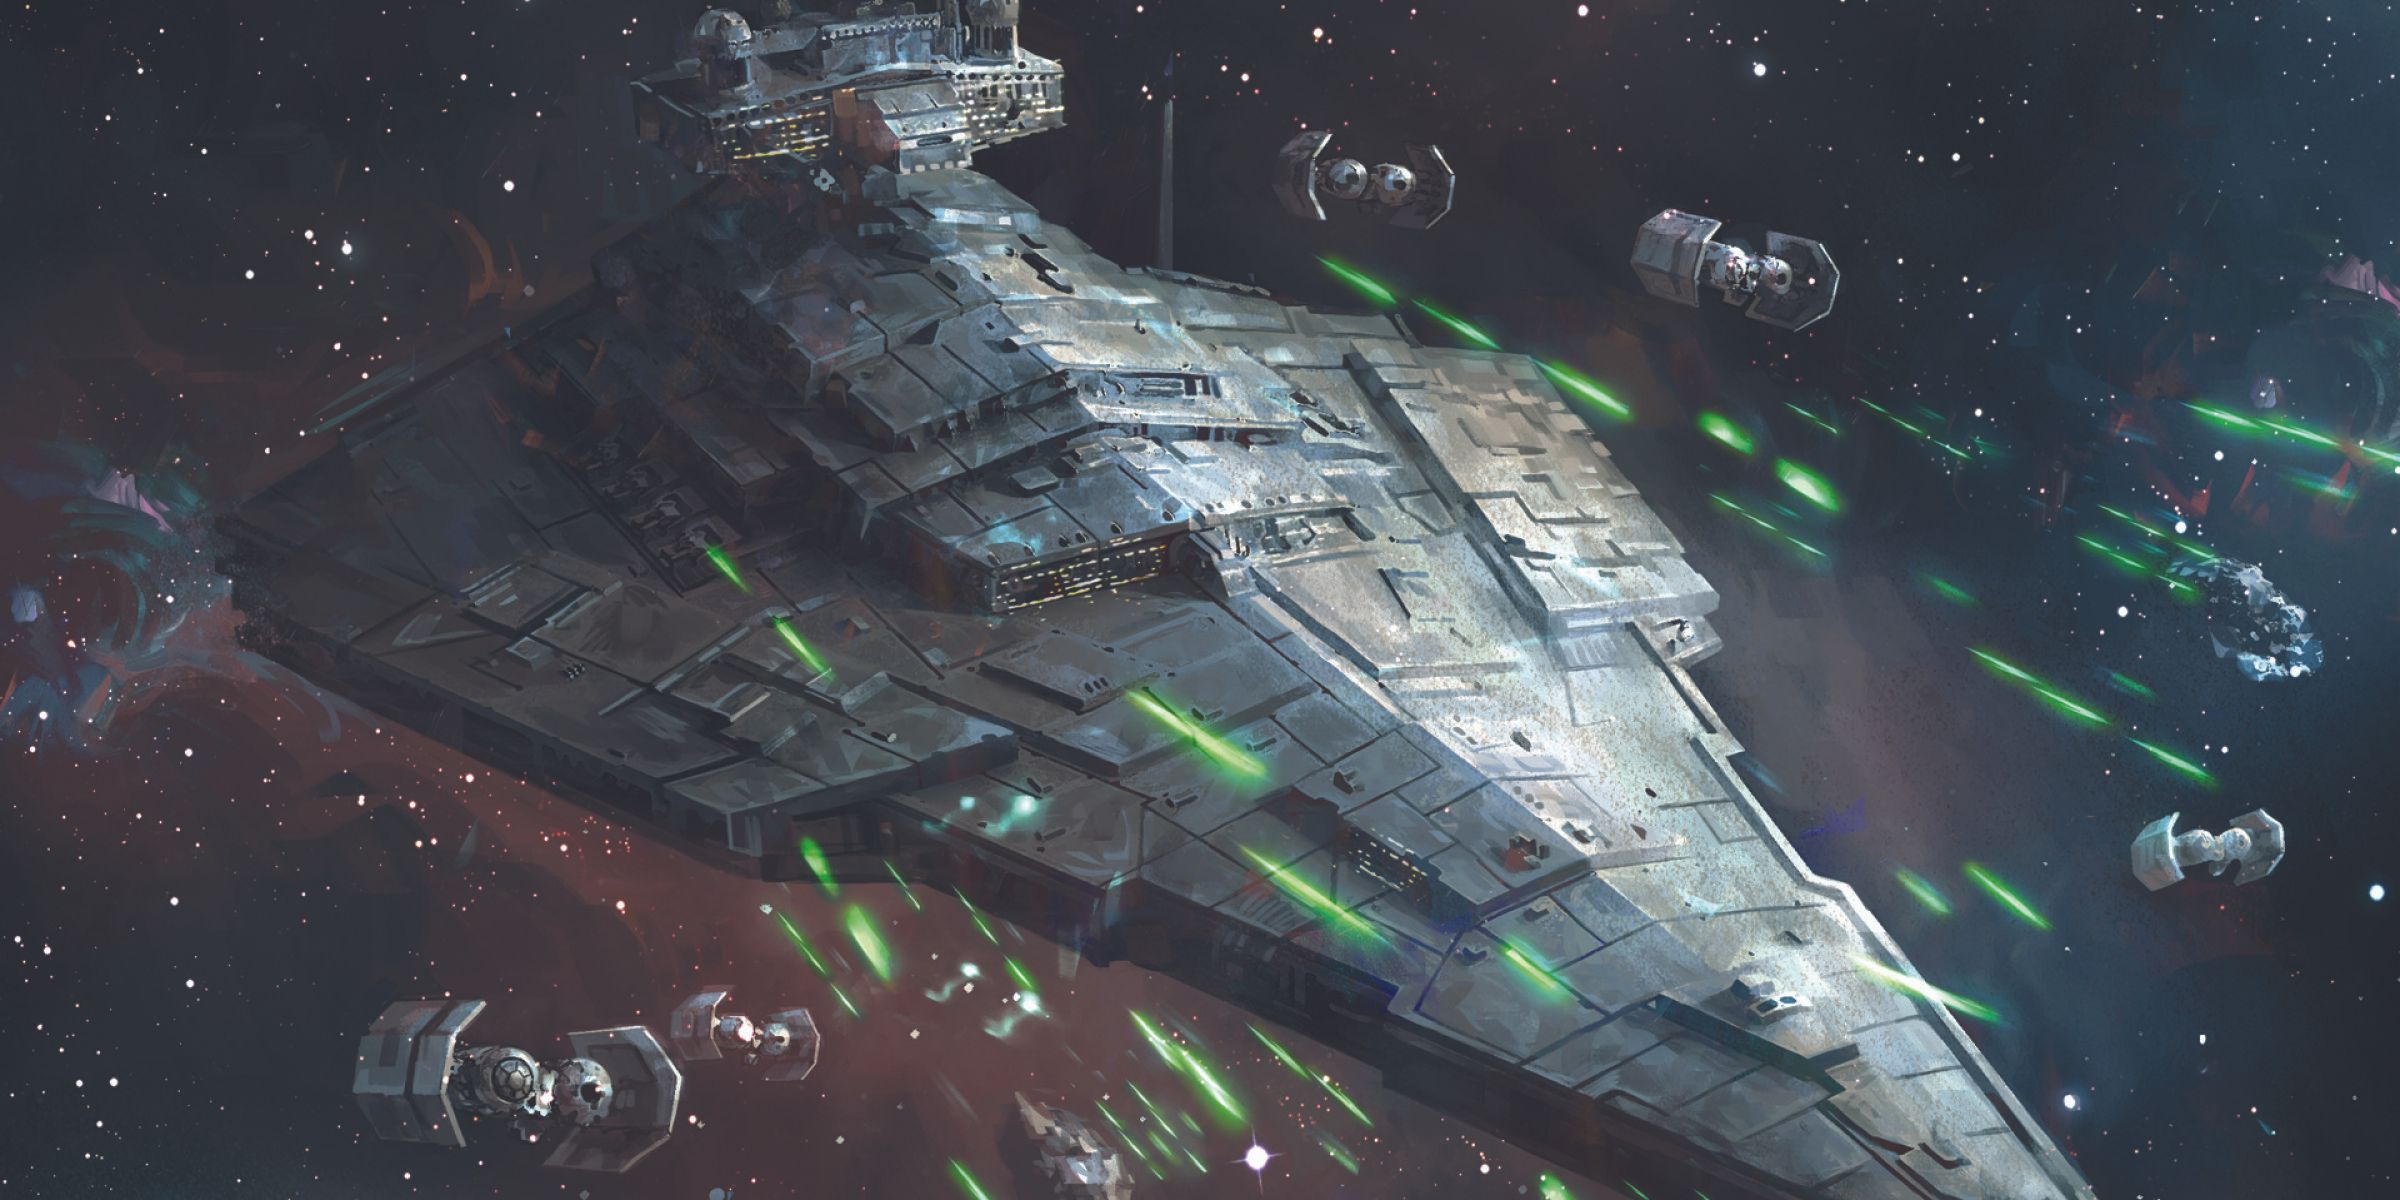 The 15 Most Powerful Ships In The Star Wars Universe Ranked